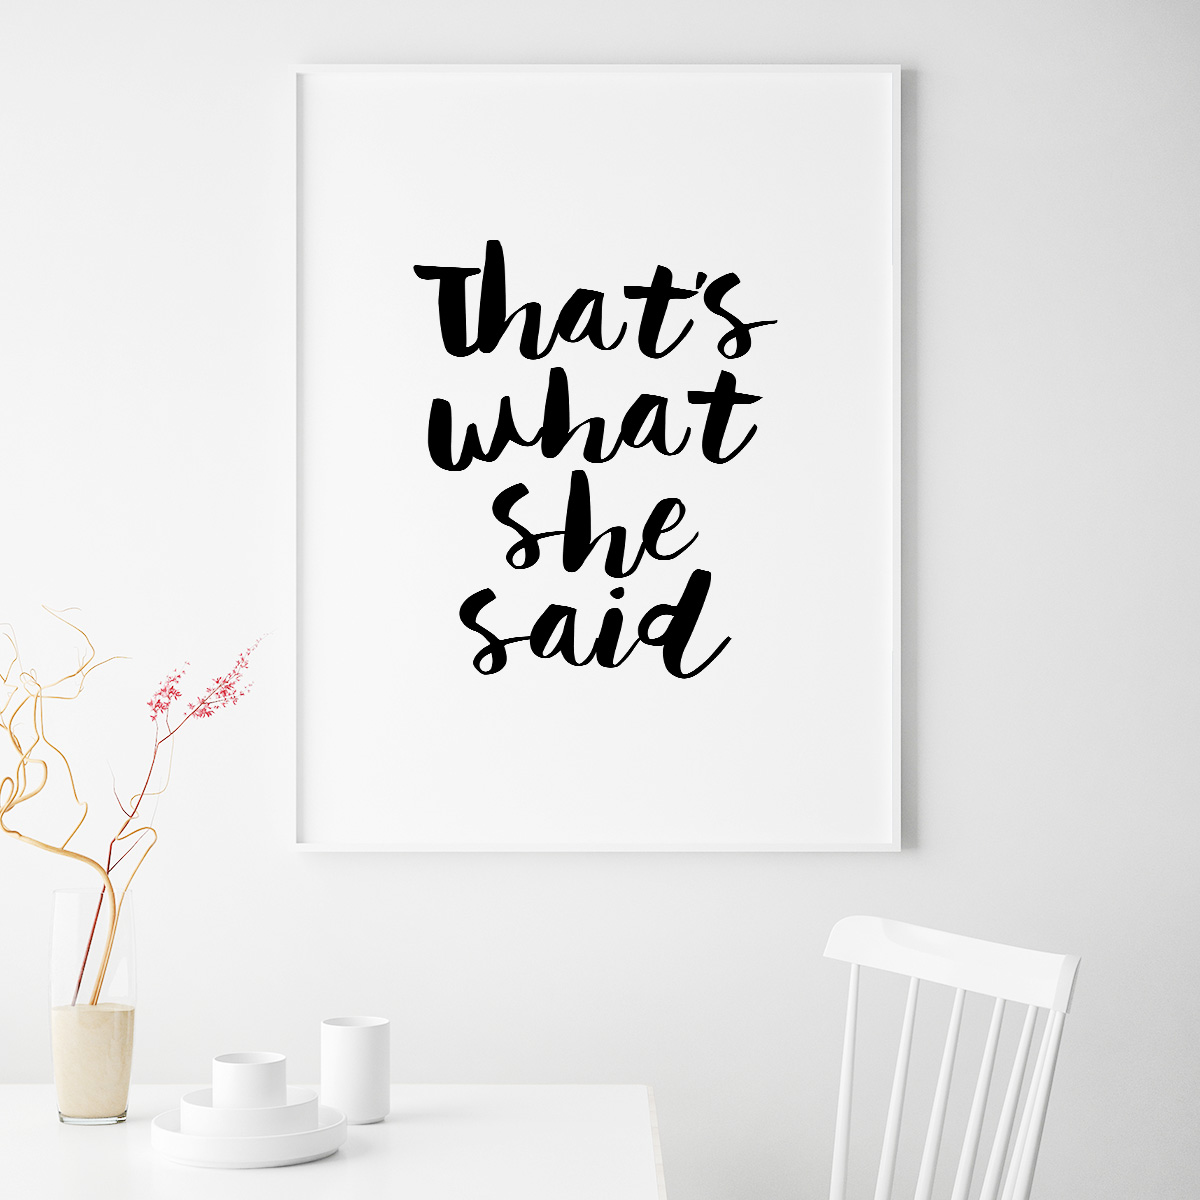 That's What She Said Poster by MottosPrint Design